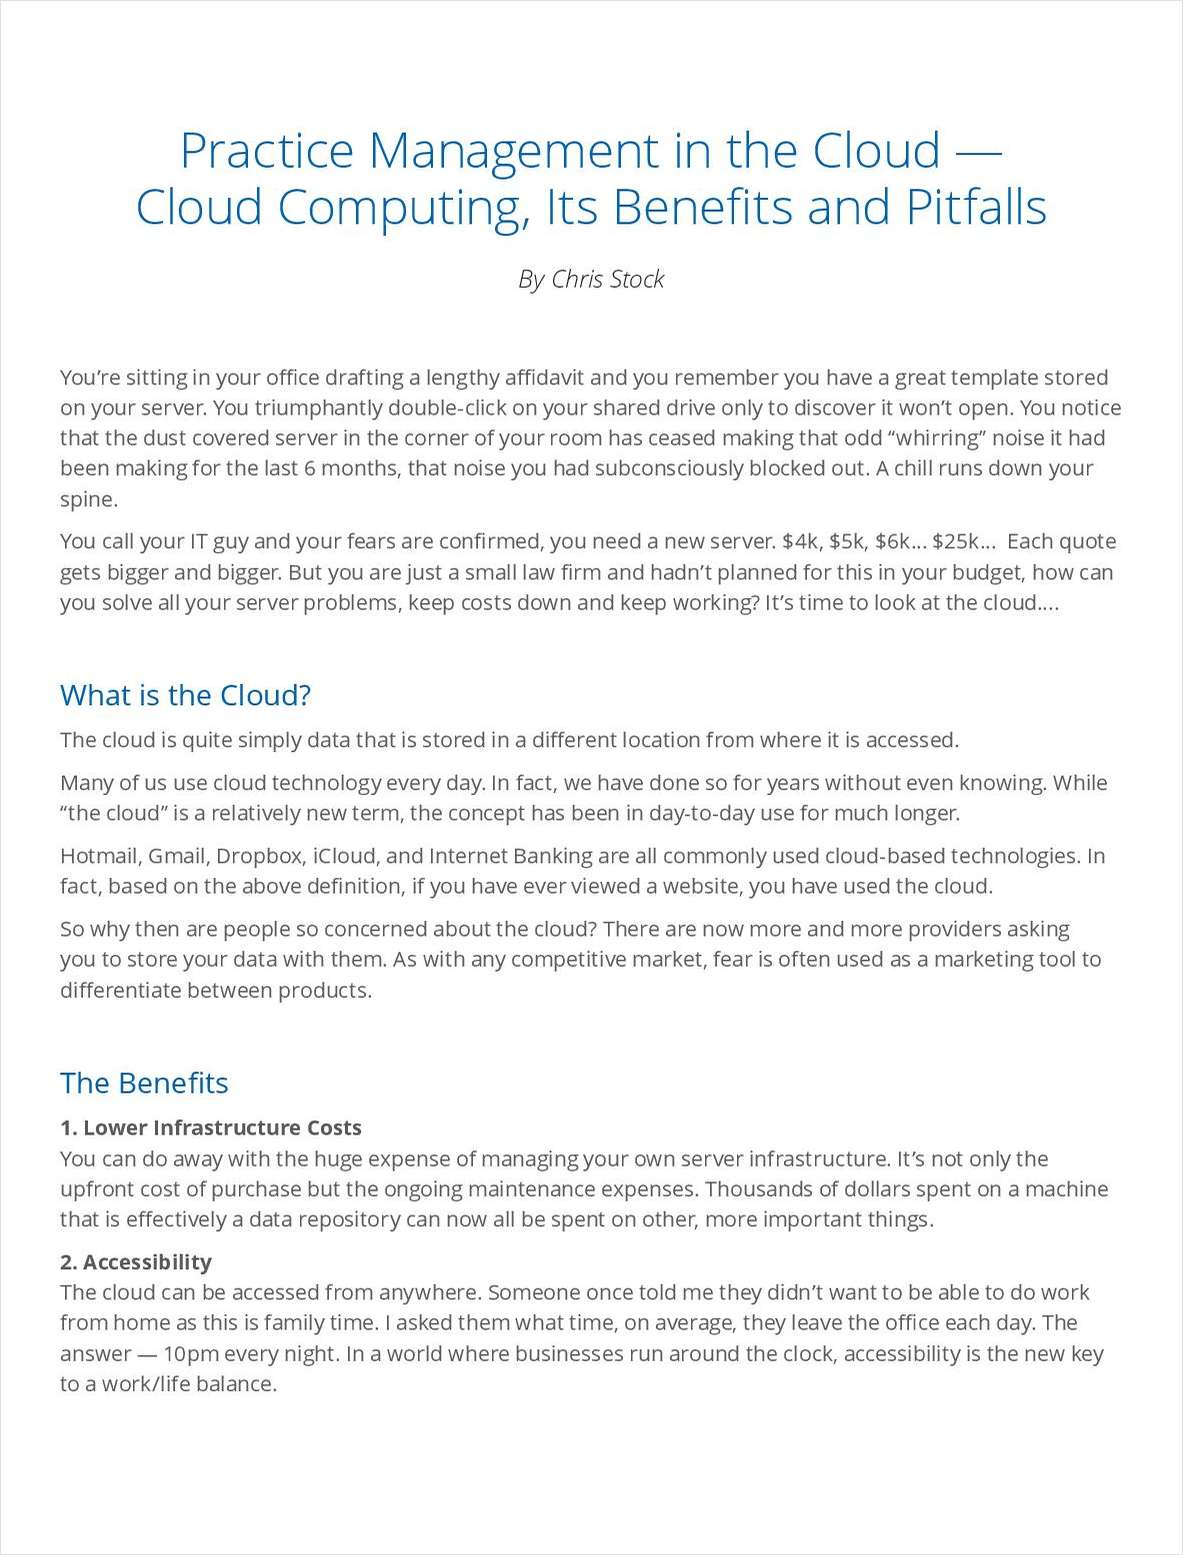 Download this paper and learn the benefits of cloud computing, potential pitfalls and how to avoid them to help make your firm more efficient and control costs.